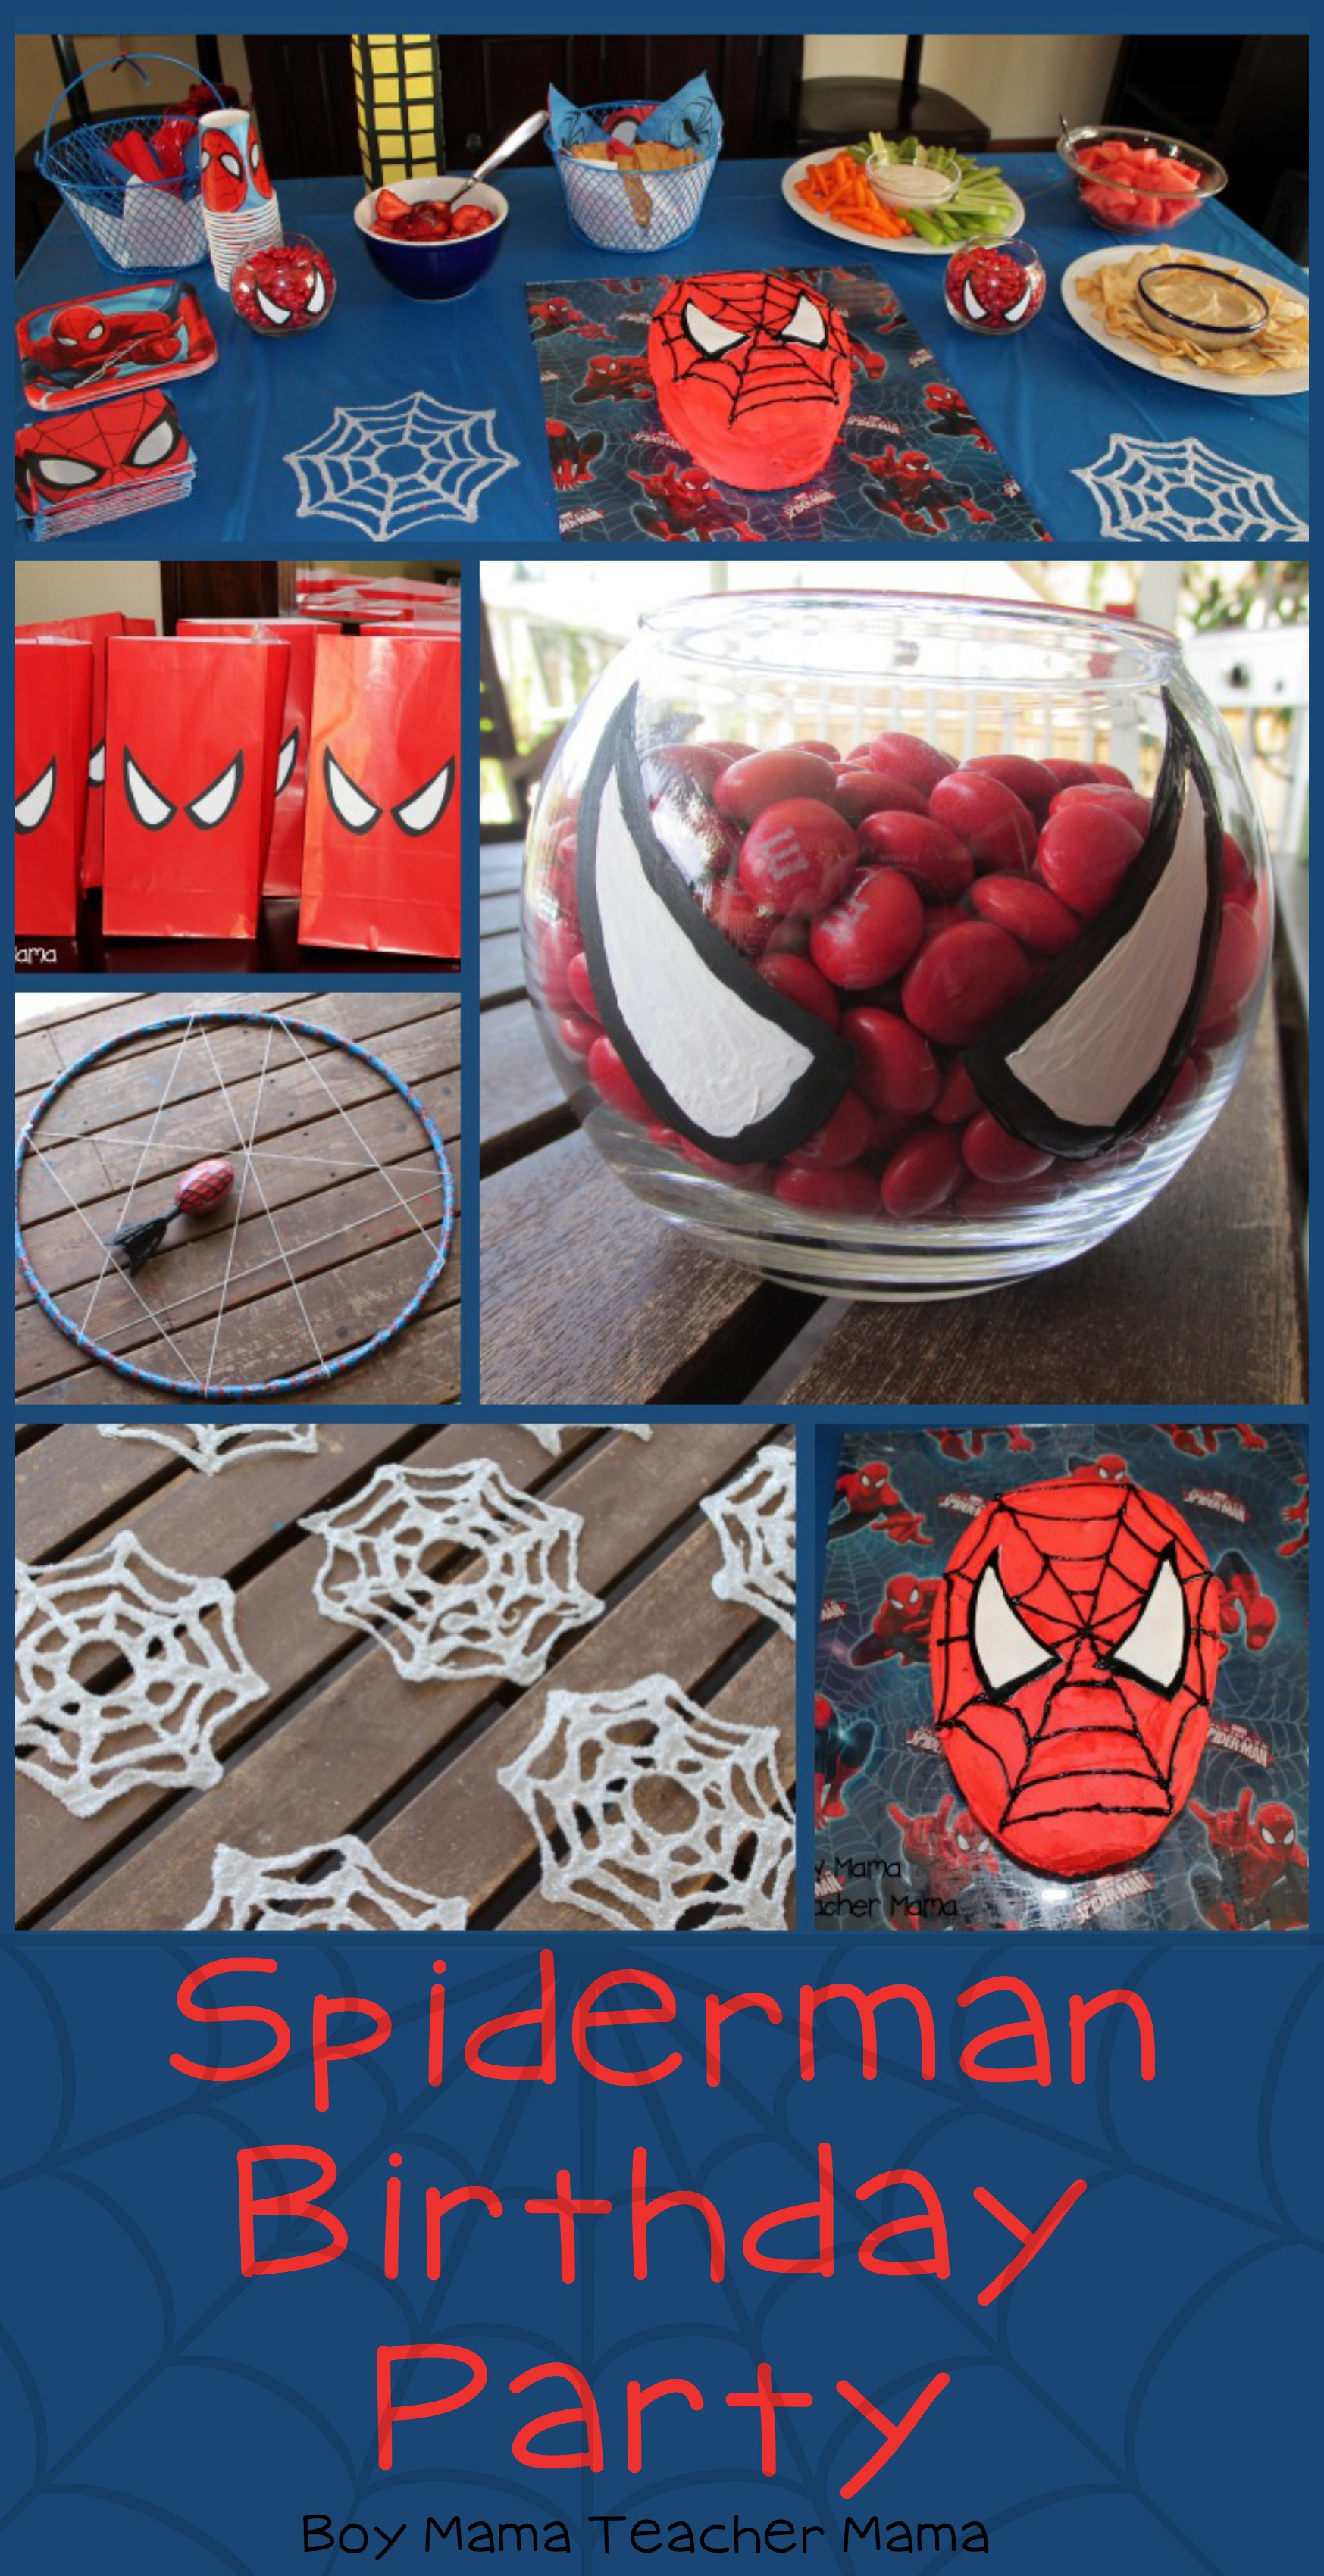 Best ideas about Spiderman Birthday Party . Save or Pin Boy Mama Spiderman Birthday Party Boy Mama Teacher Mama Now.